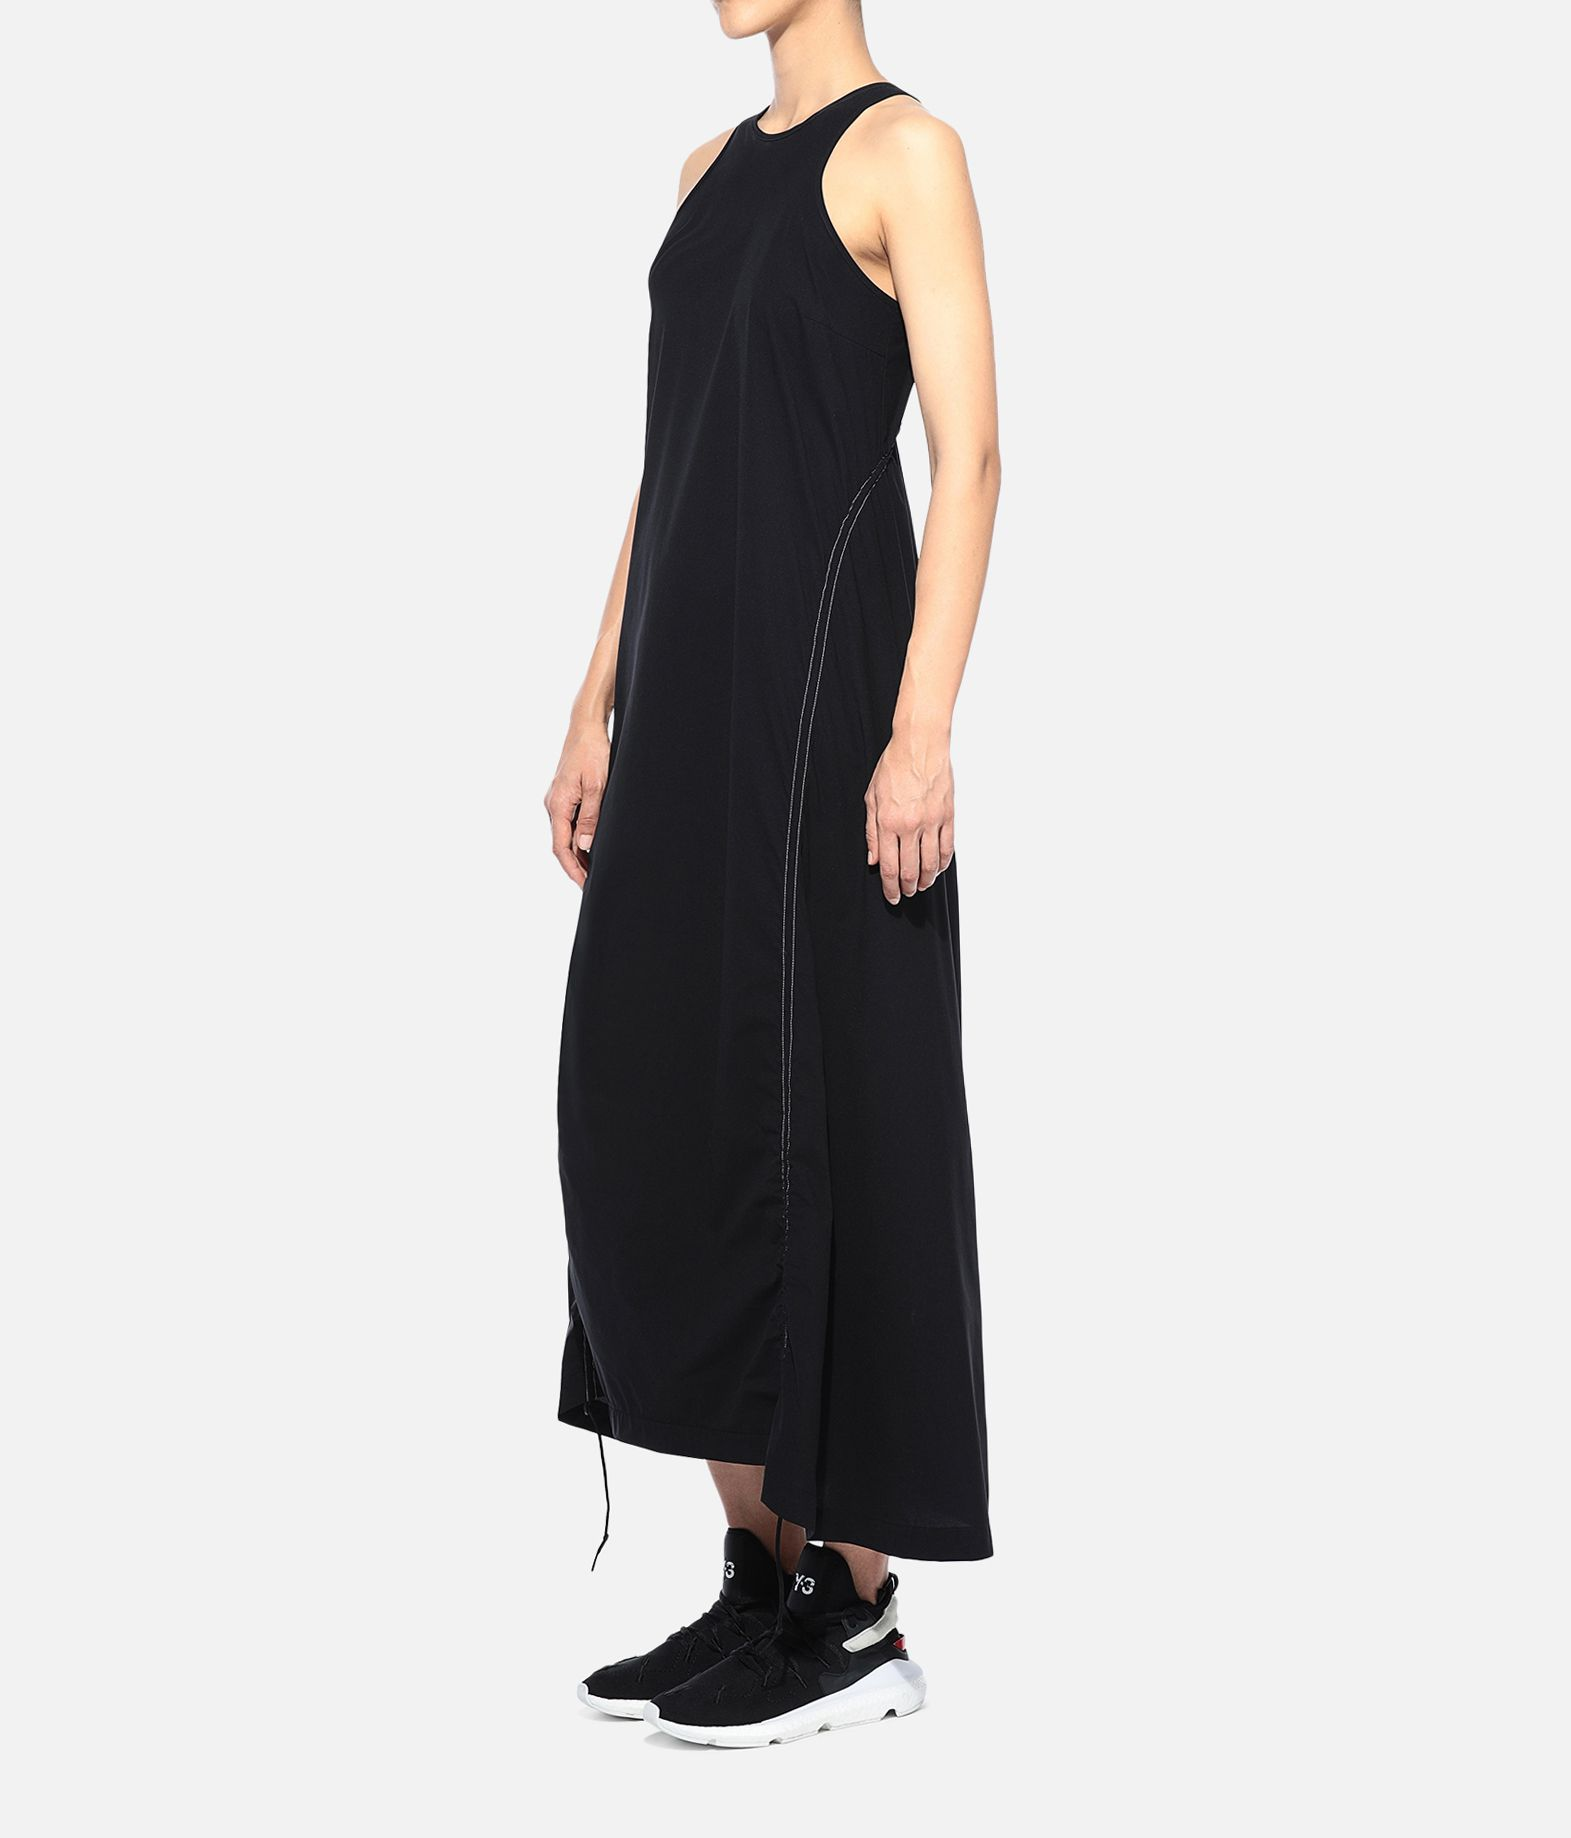 Y-3 Y-3 Light 3-Stripes Dress Dress Woman e